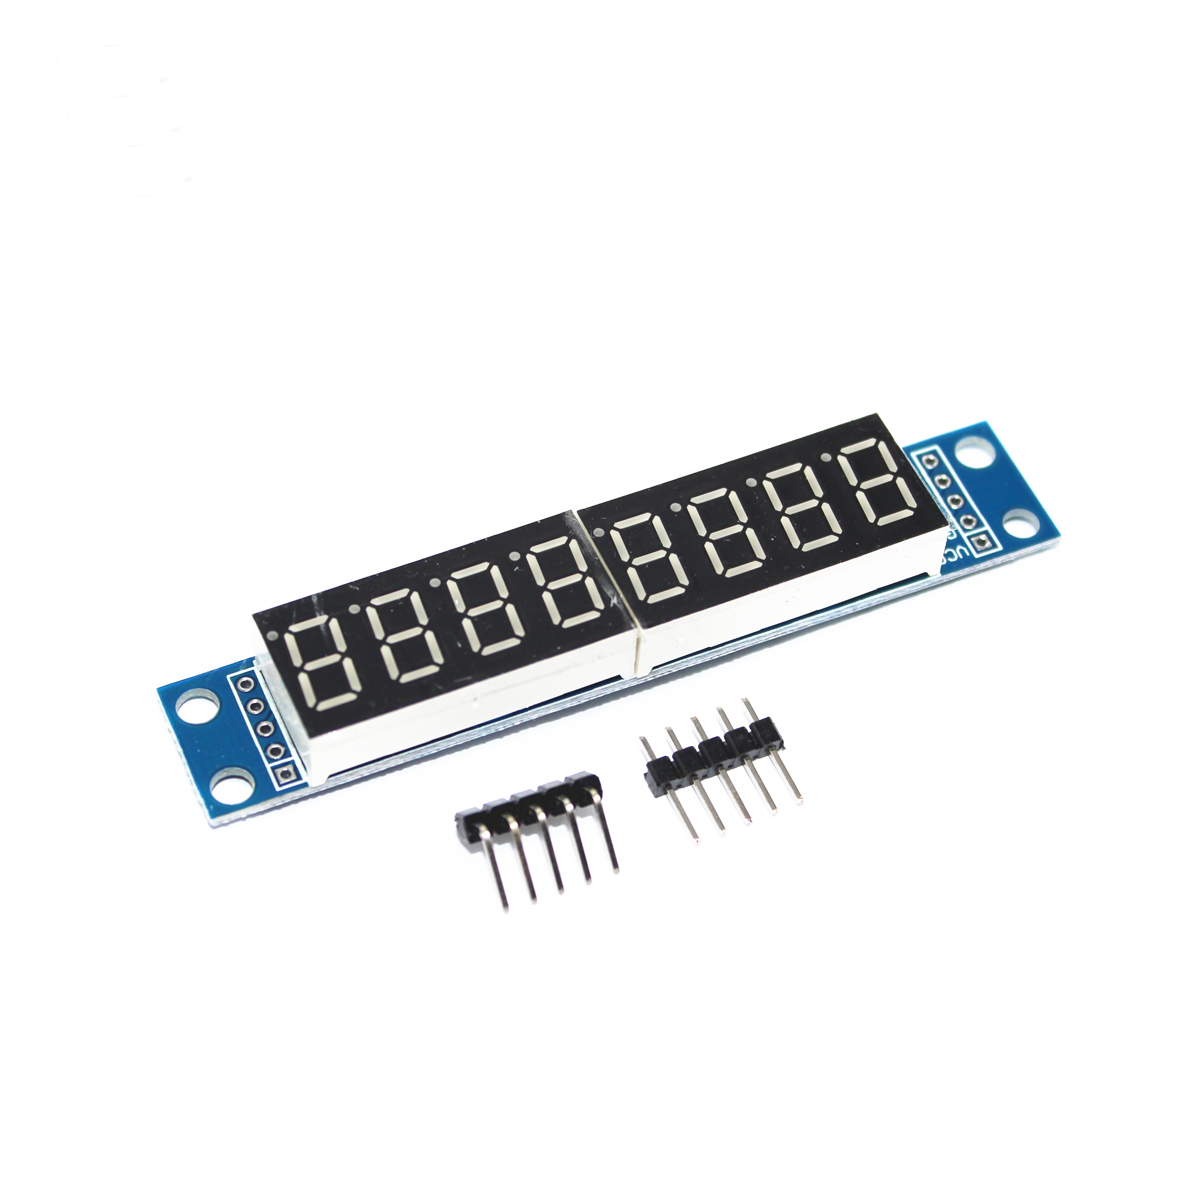 MAX7219 LED Dot Matrix Display Module 8 Digital Tube Display Control Board For Arduino Microcontroller Serial Driver 7 Segment